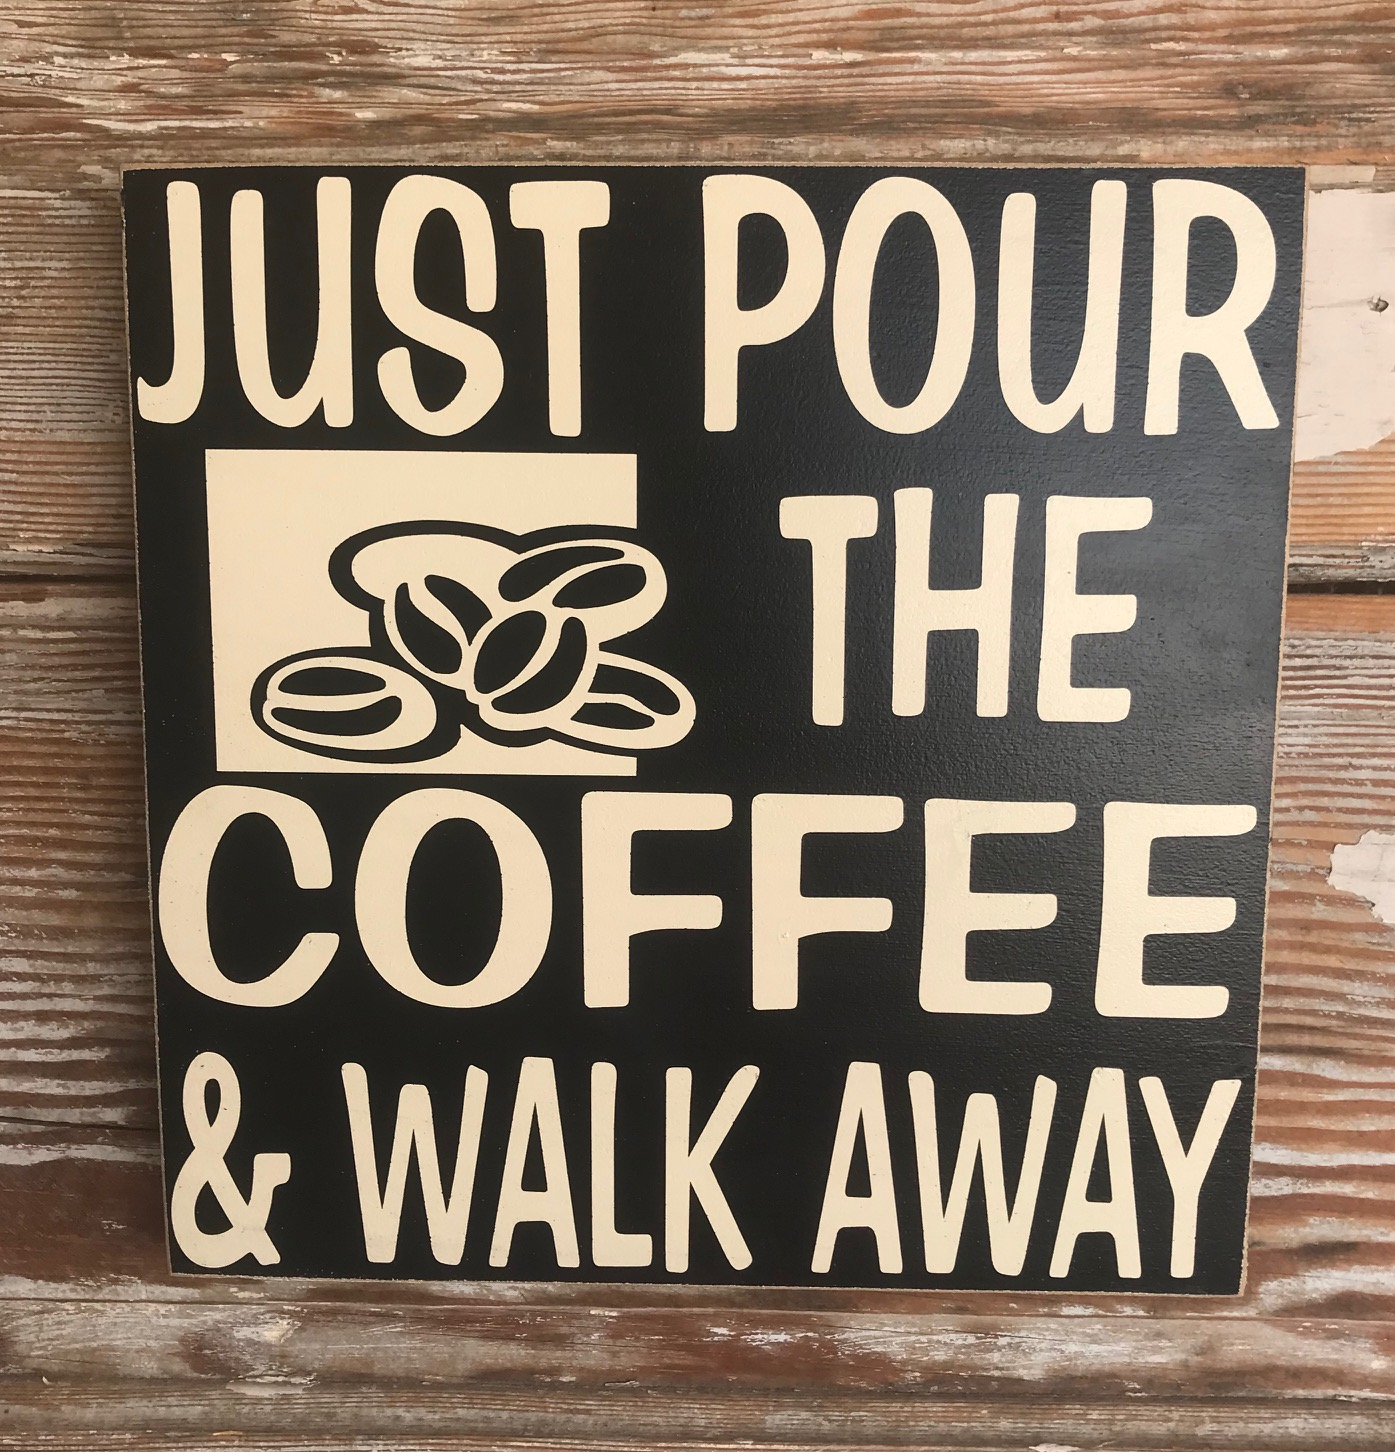 Just Pour The Coffee & Walk Away.  Wood Sign